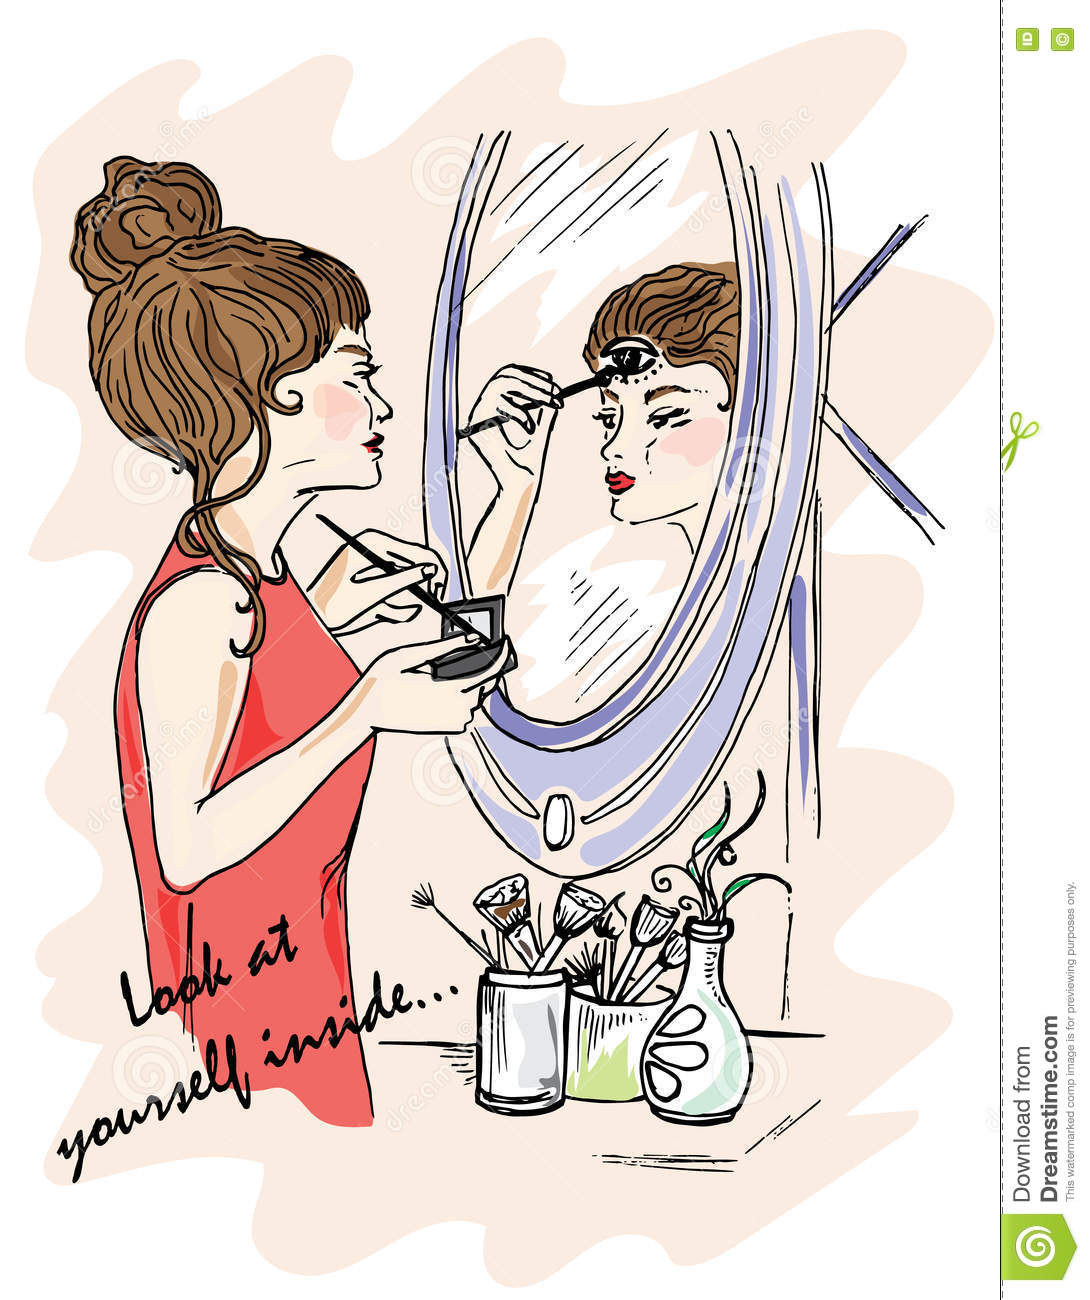 Looking at yourself in the mirror clipart jpg black and white stock Looking At Yourself In The Mirror Clipart jpg black and white stock